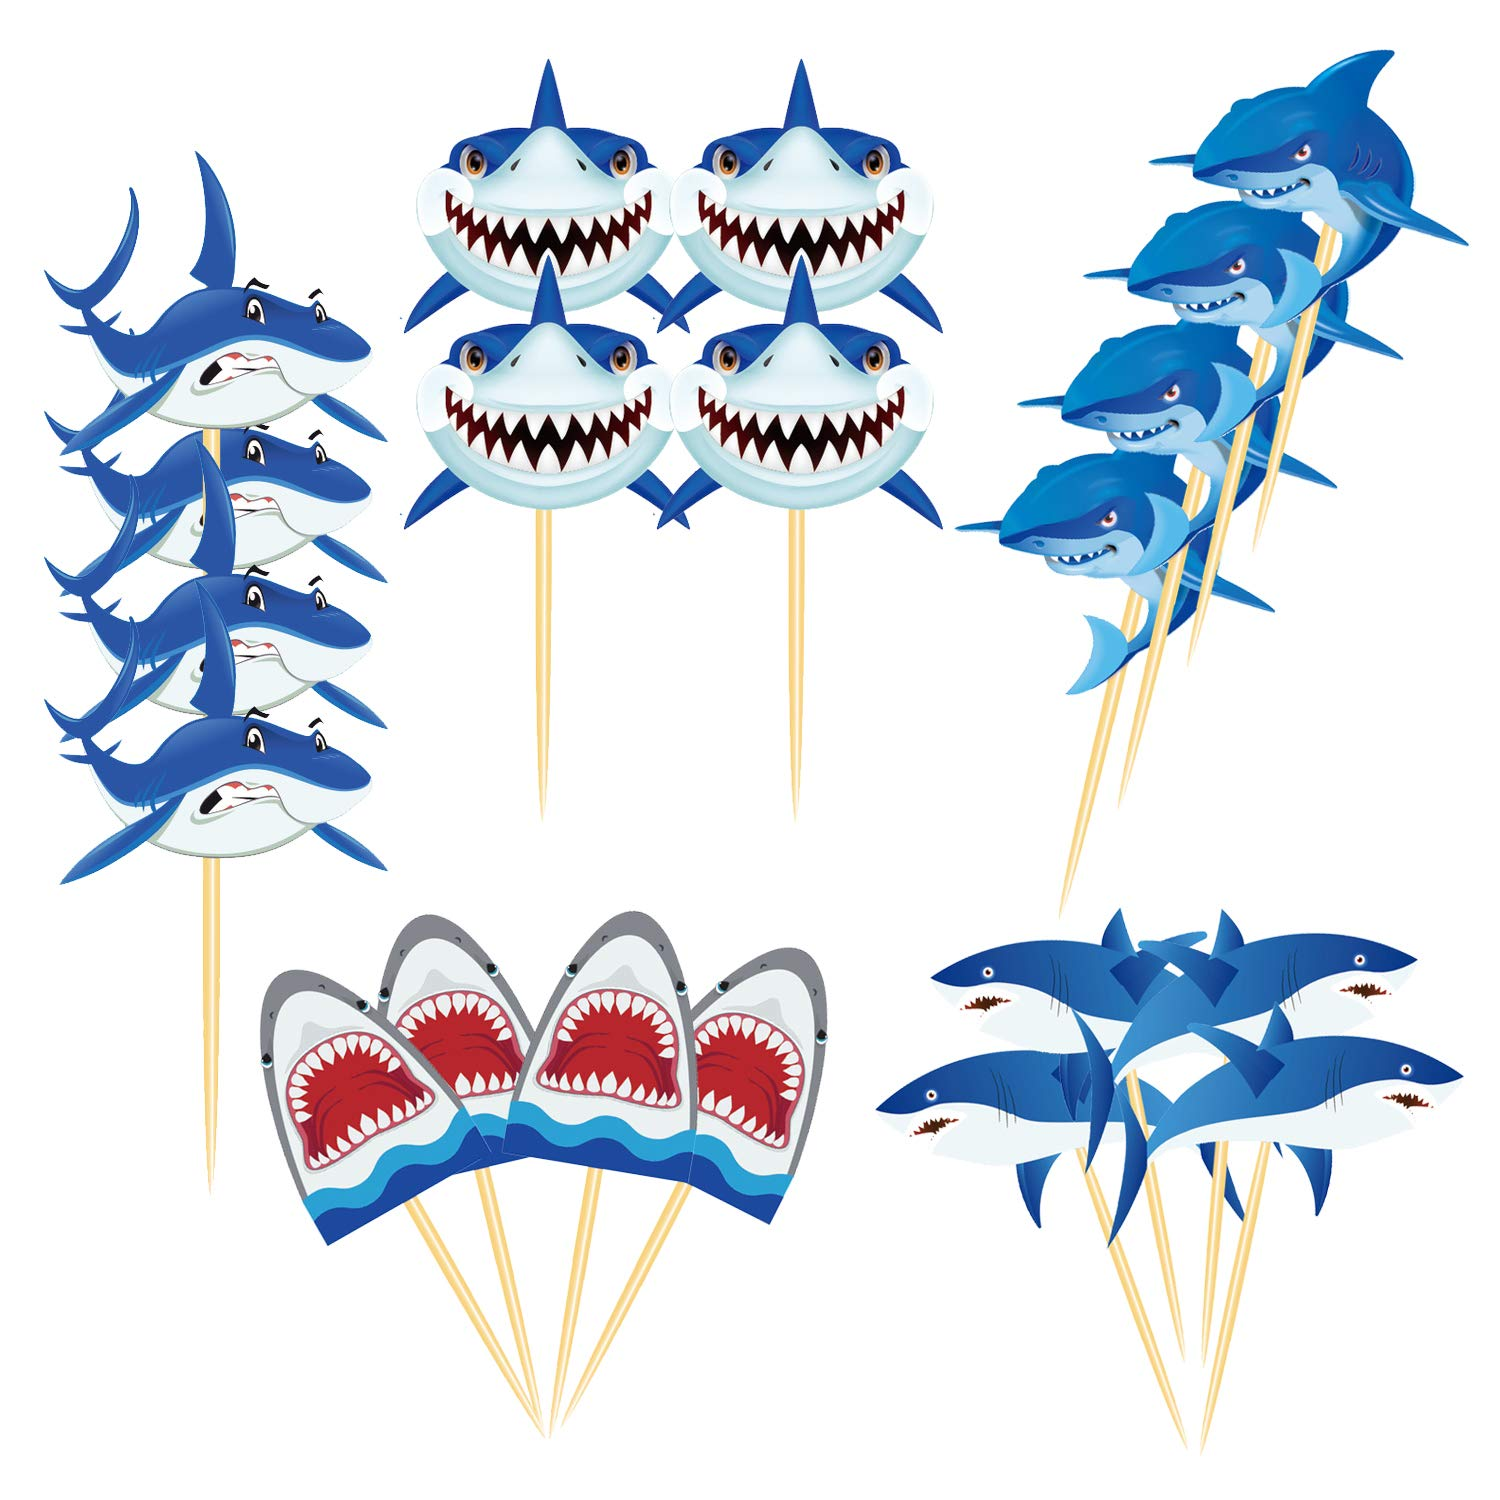 20 Pcs Shark Cupcake Toppers Shark Themed Party Supplies Food Toppers for Birthday Party, Baby Shower,Picnic Wedding